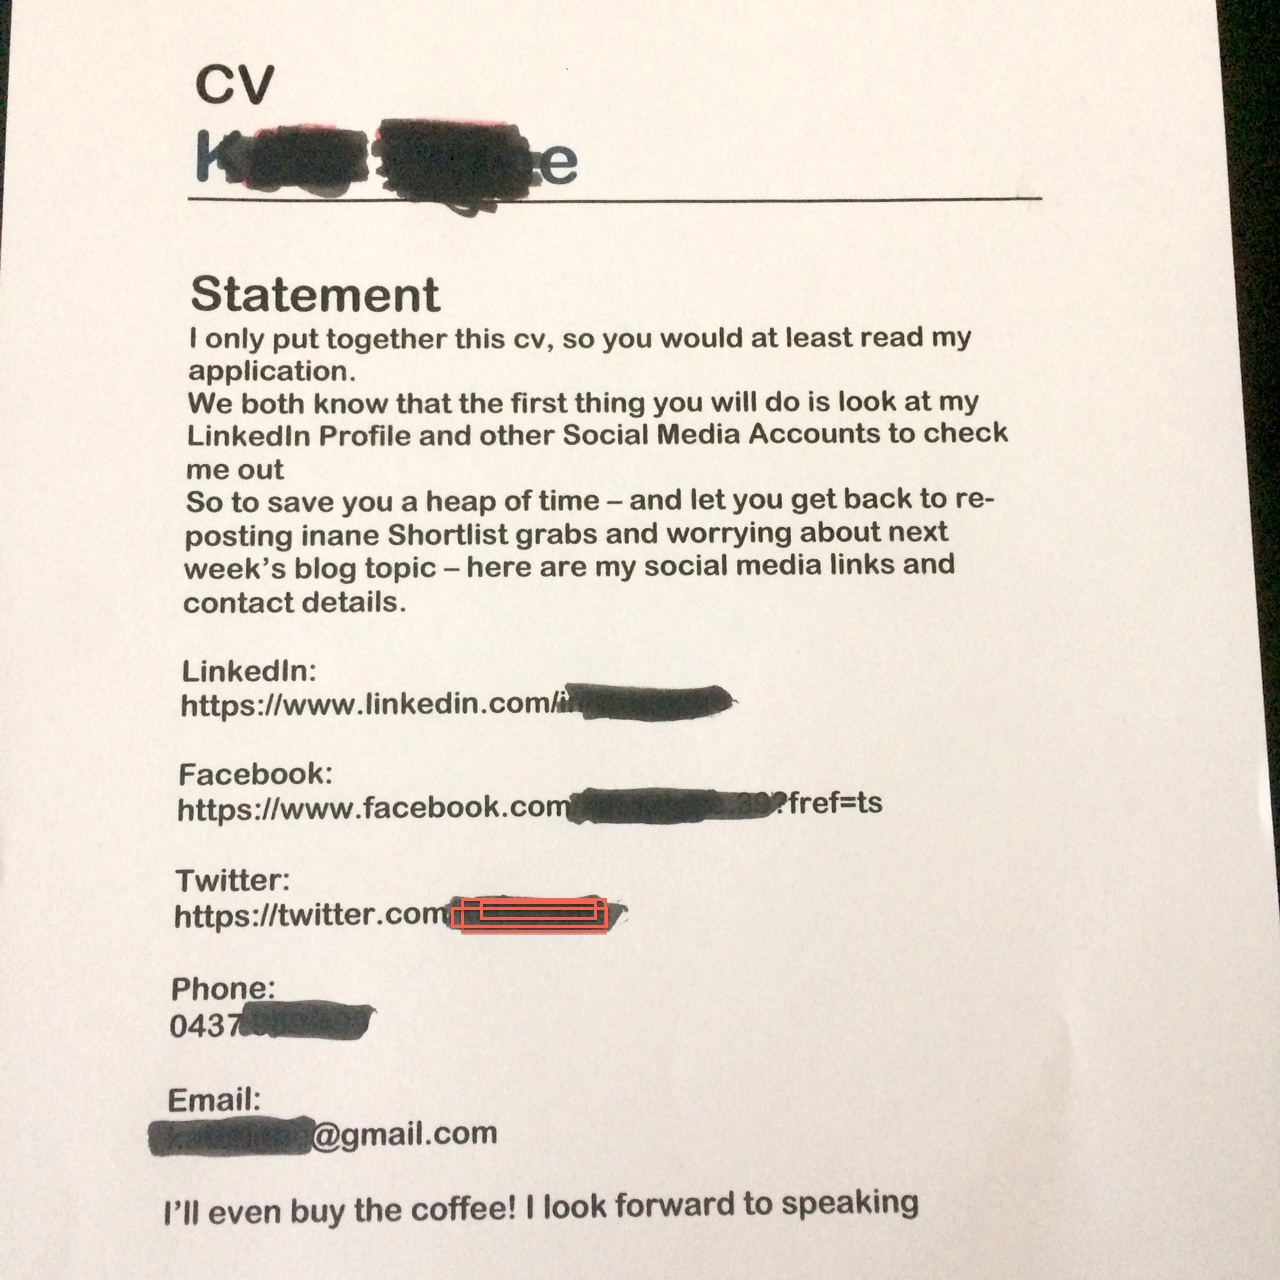 Edit my fake CV, if needed. Especially the Education listings...?